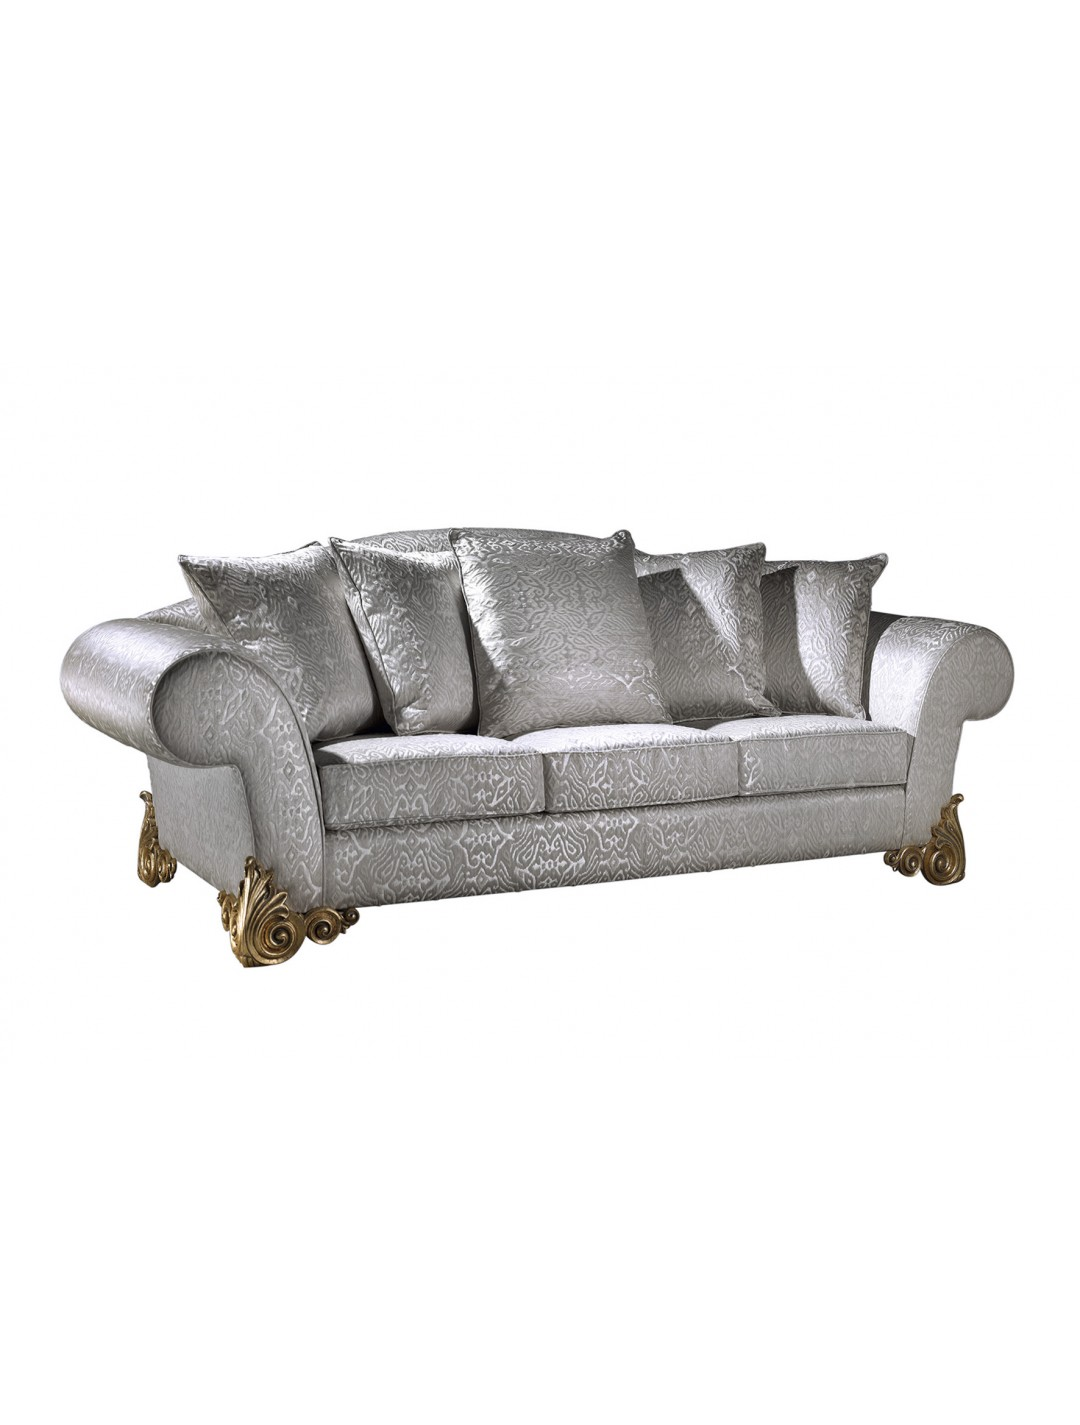 MARIOLA 3-SEATER SOFA, WITH FIVE 60*60 CUSHIONS INCLUDED, C.O.M.